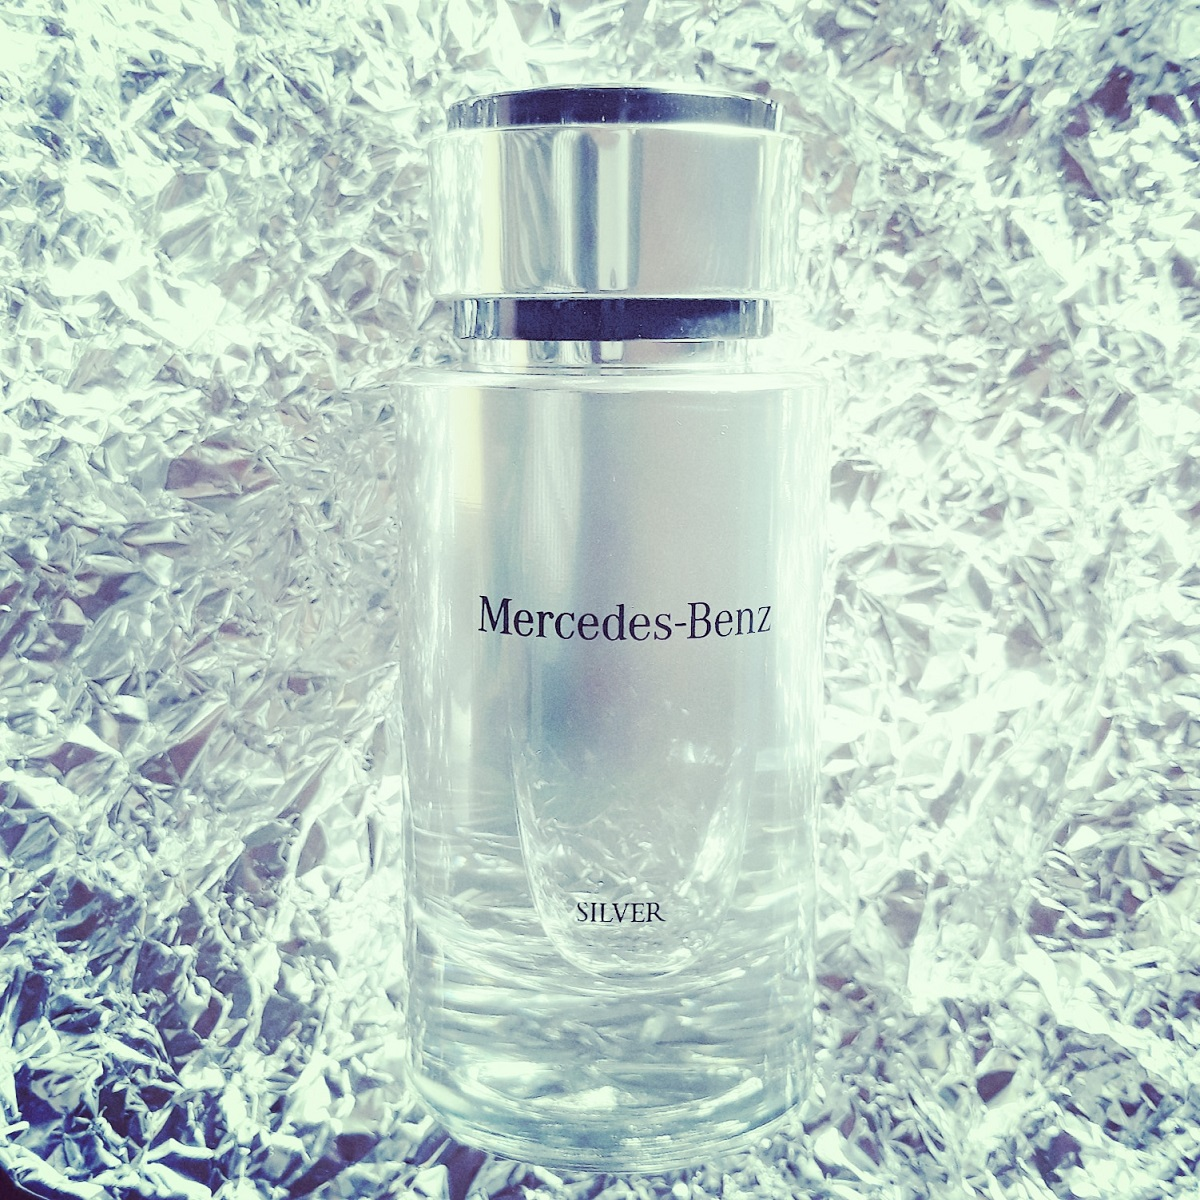 Mercedes benz vetiver in shades of silver fragrance reviews for Mercedes benz cologne review